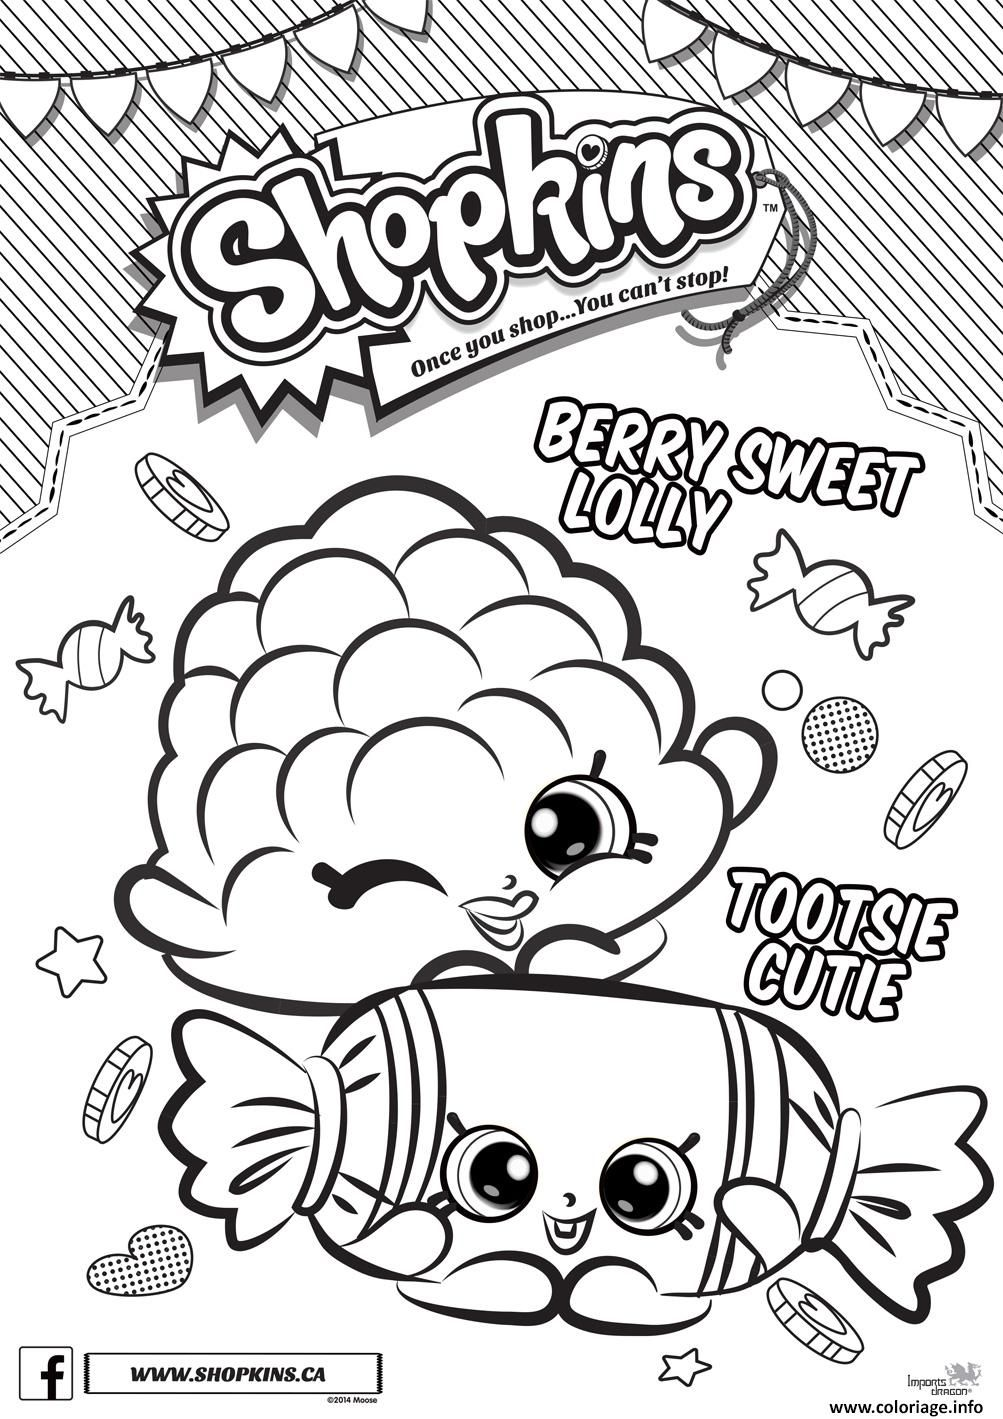 Coloriage shopkins berry sweet ly tootsie cutie   imprimer et coloriage en ligne pour enfants Dessine les coloriages Shopkins Berry Sweet Lolly Tootsie